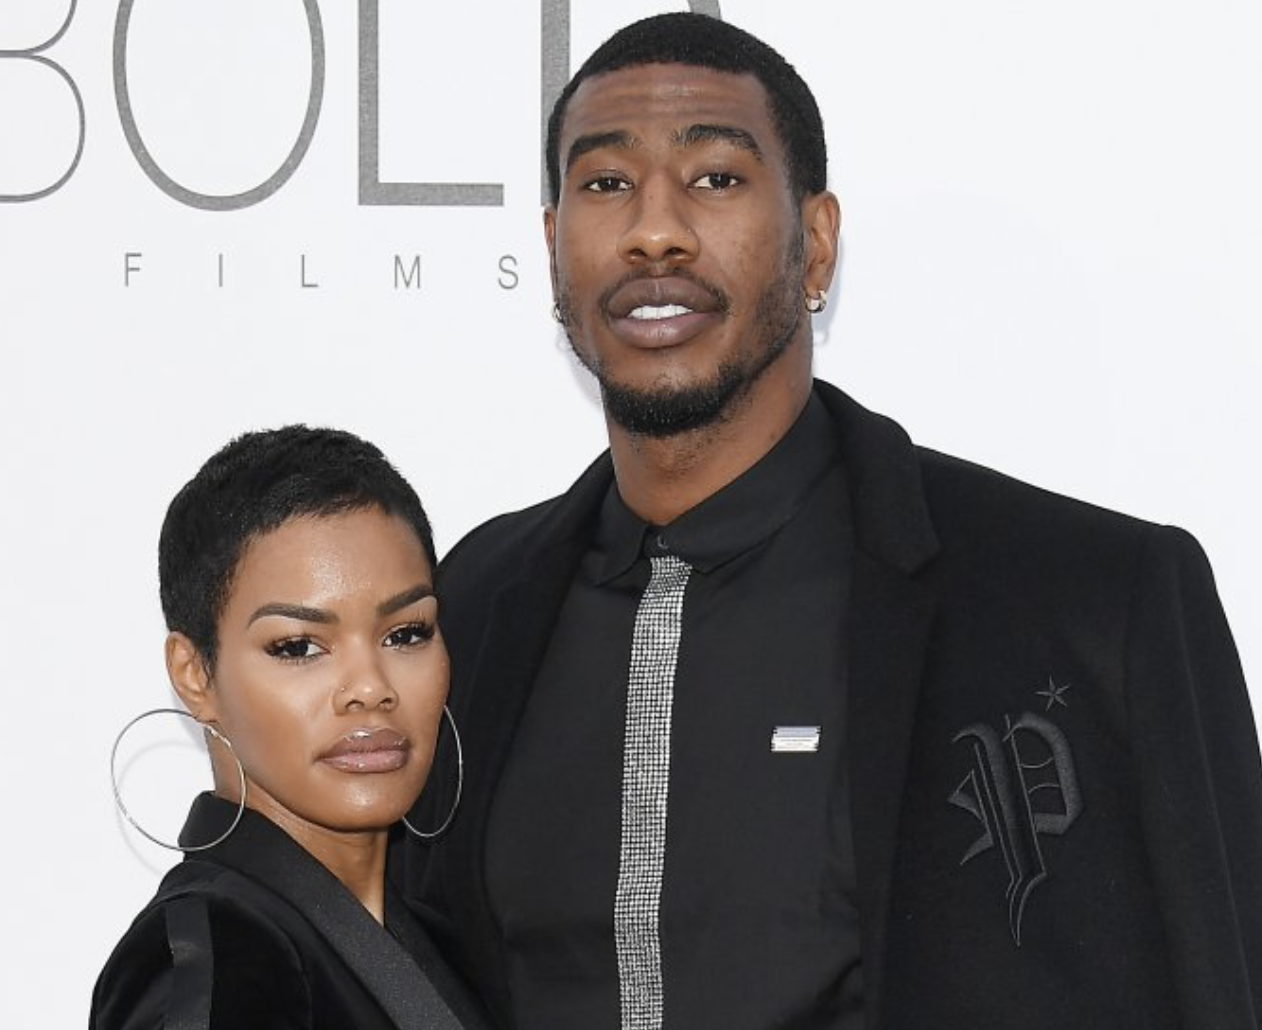 Teyanna Taylor and Iman Shumpert To Star in New Reality Show